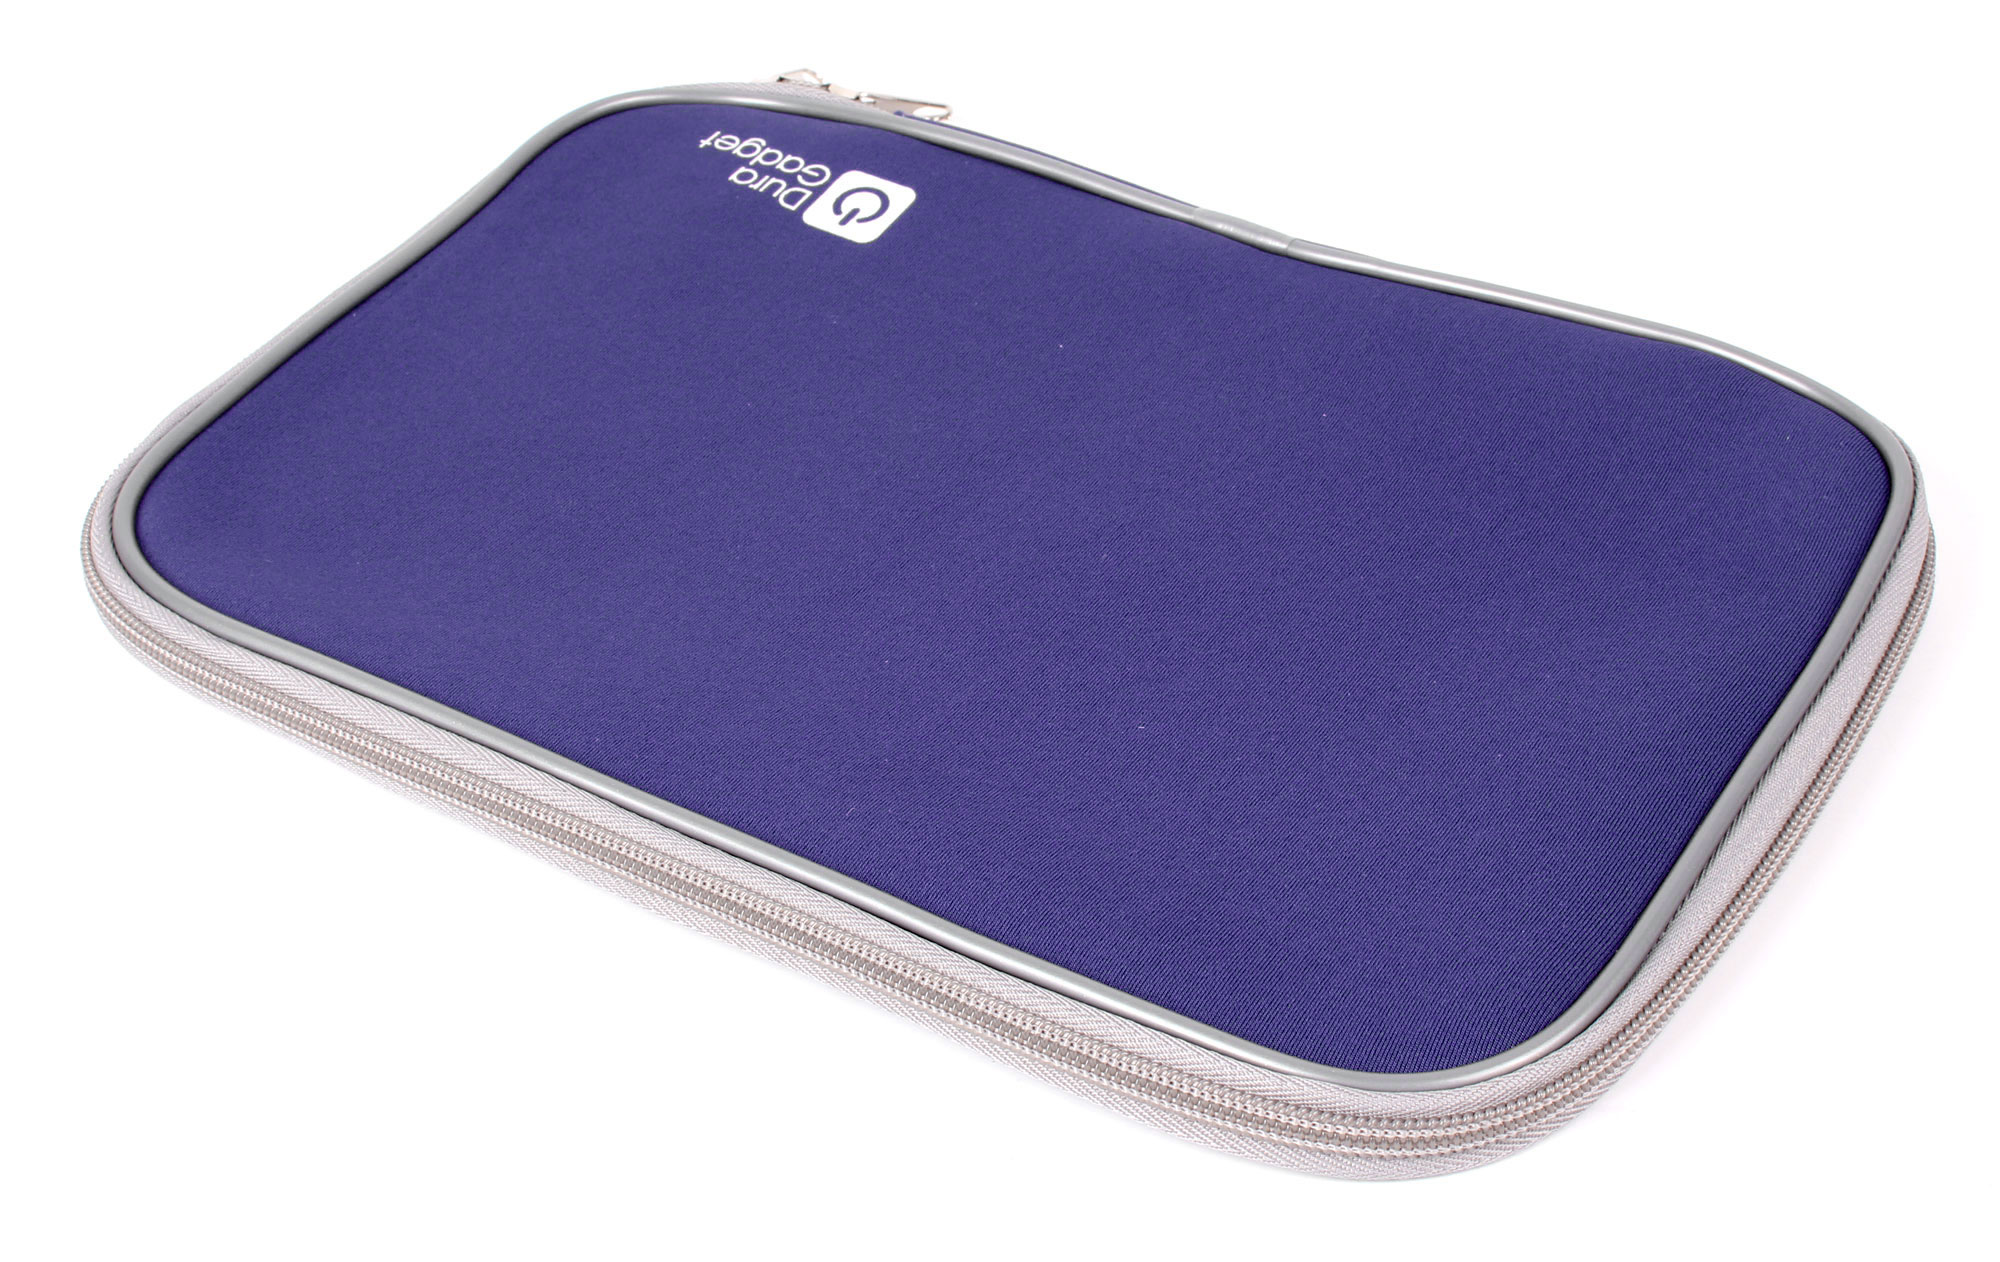 Squishy Laptop Cases : DURAGADGET Soft Lined Neoprene Smart Blue 18 Inch Laptop Case With Dual Zip eBay